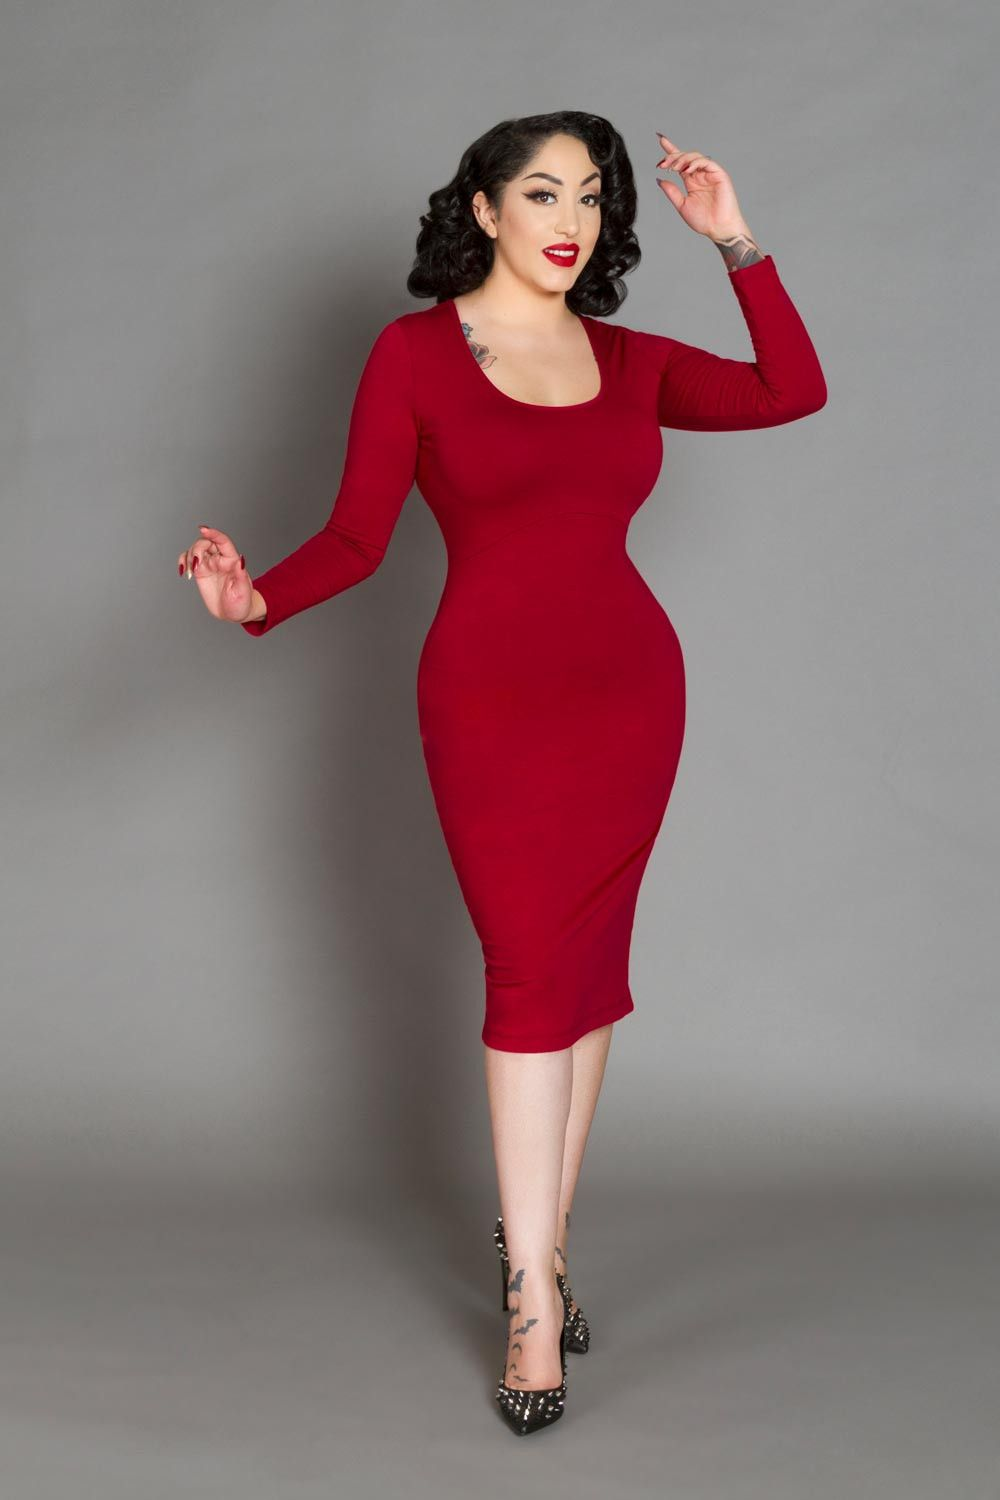 ac3b07de Hannah Wiggle Dress in Red. Hannah Wiggle Dress in Red Rockabilly Looks, Rockabilly  Fashion, Retro Fashion ...